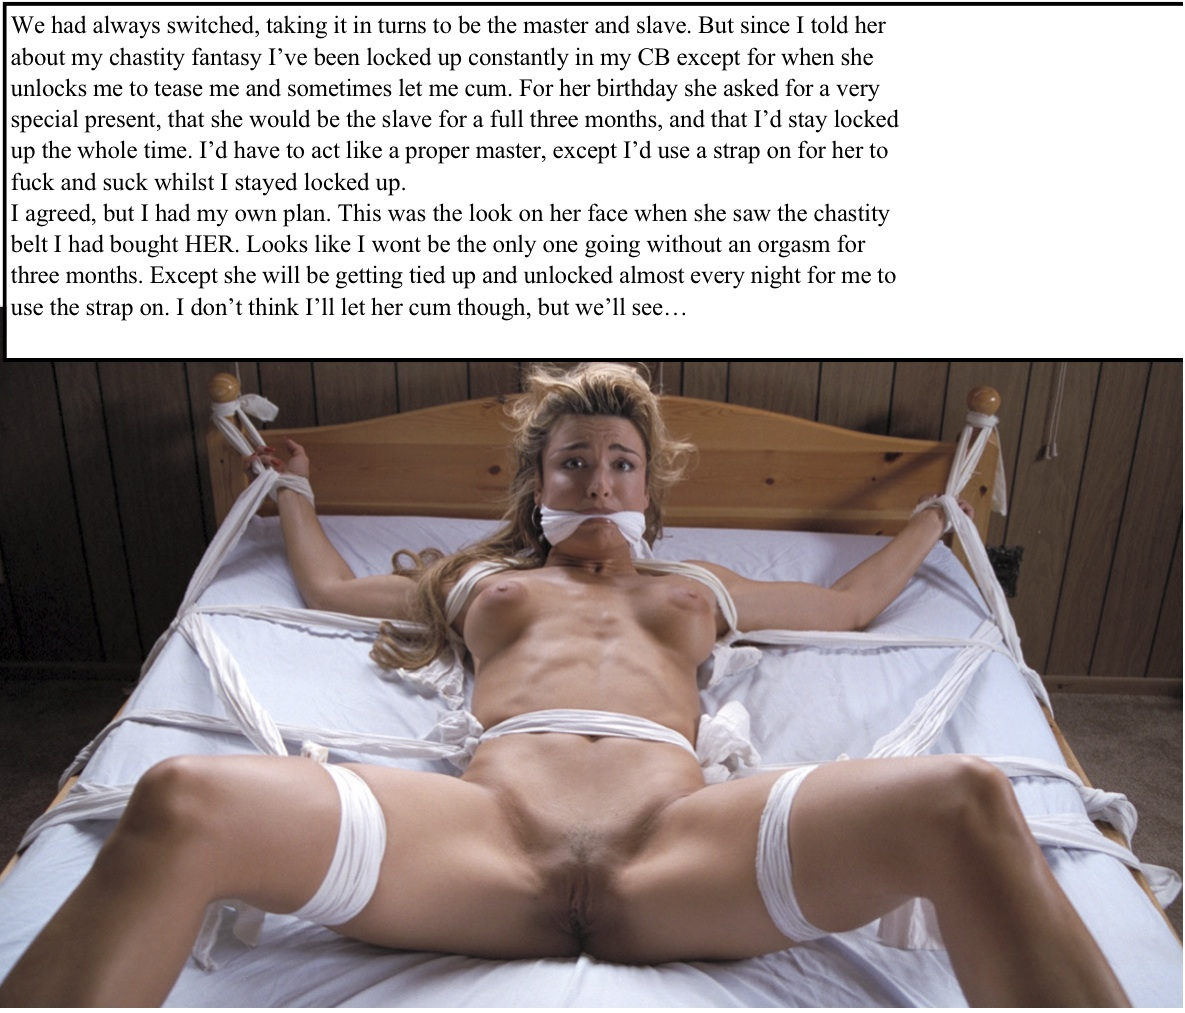 Can women chastity bondage caption speaking, opinion